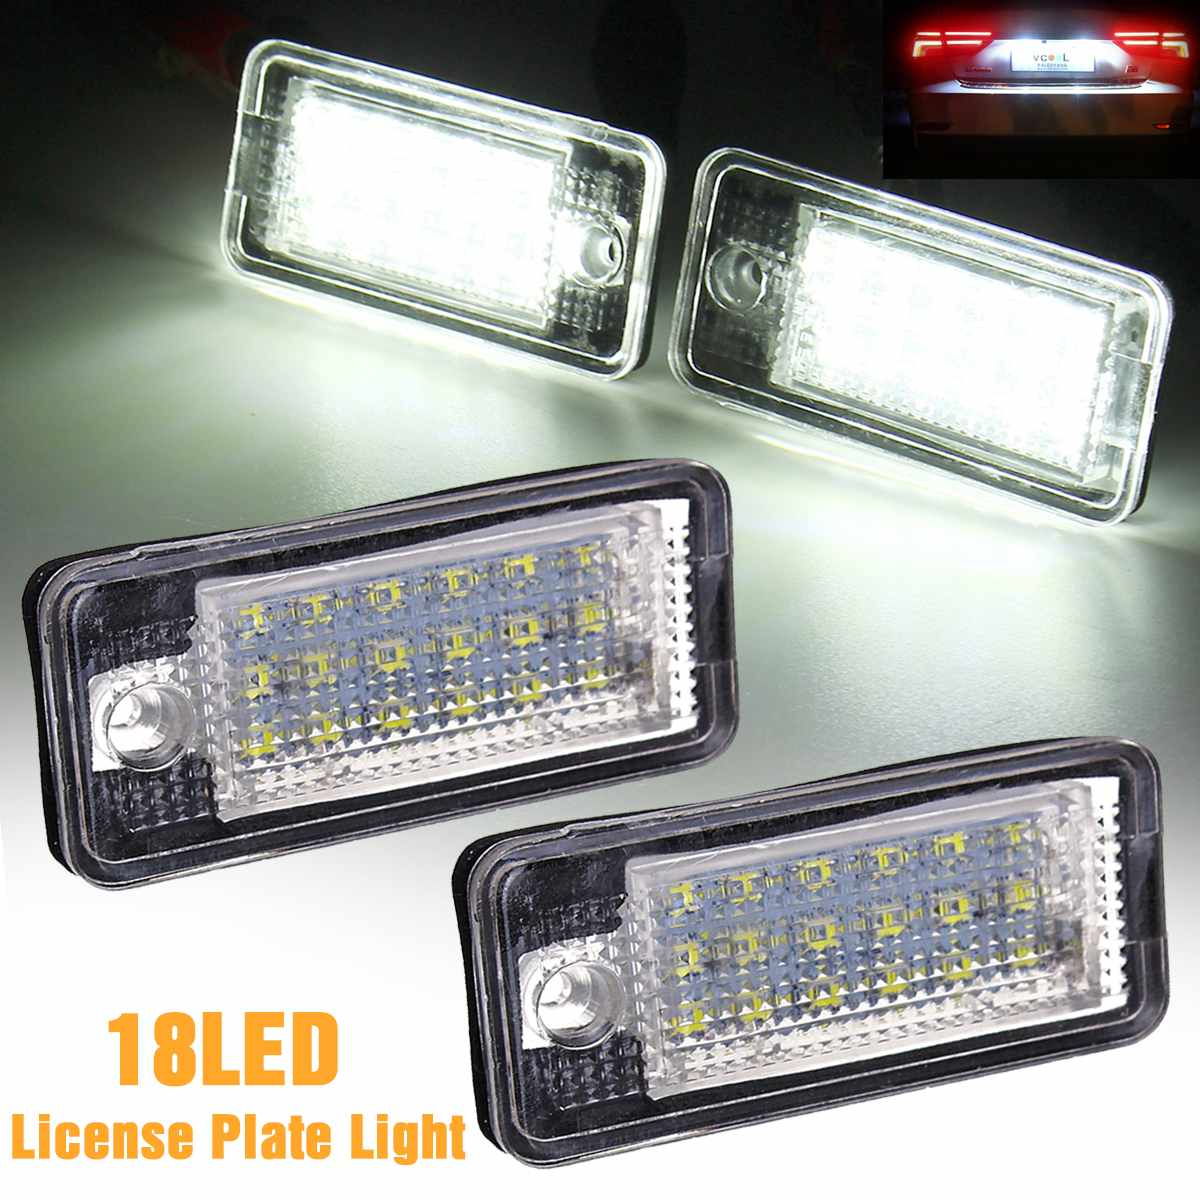 2X LED Number License Plate Light Lamp 8E0807430A 8E0807430B 8E0943021B 8E0943022B For Audi A4 S4 RS4 A3 S3 A6 C6 S6 RS6 A5